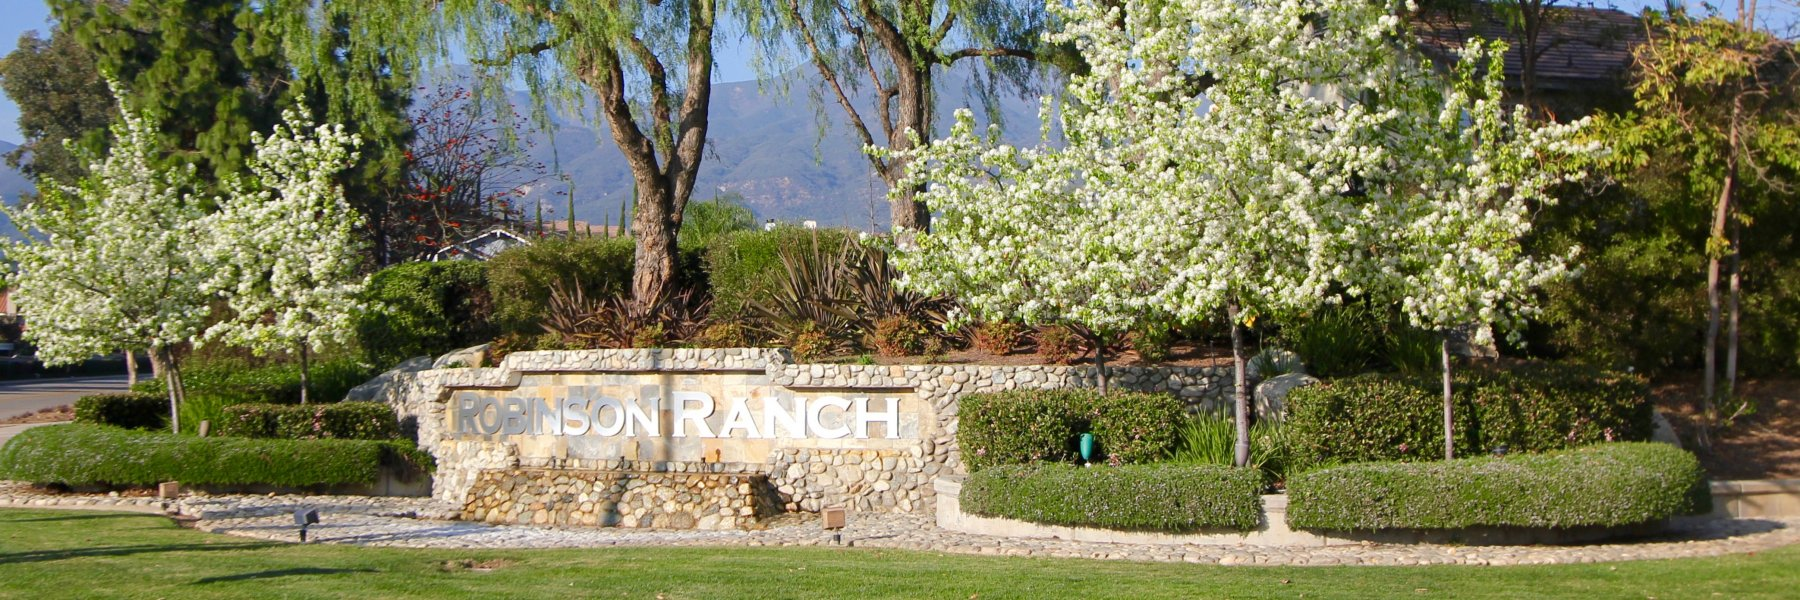 Robinson Ranch is a community of homes in Rancho Santa Margarita California